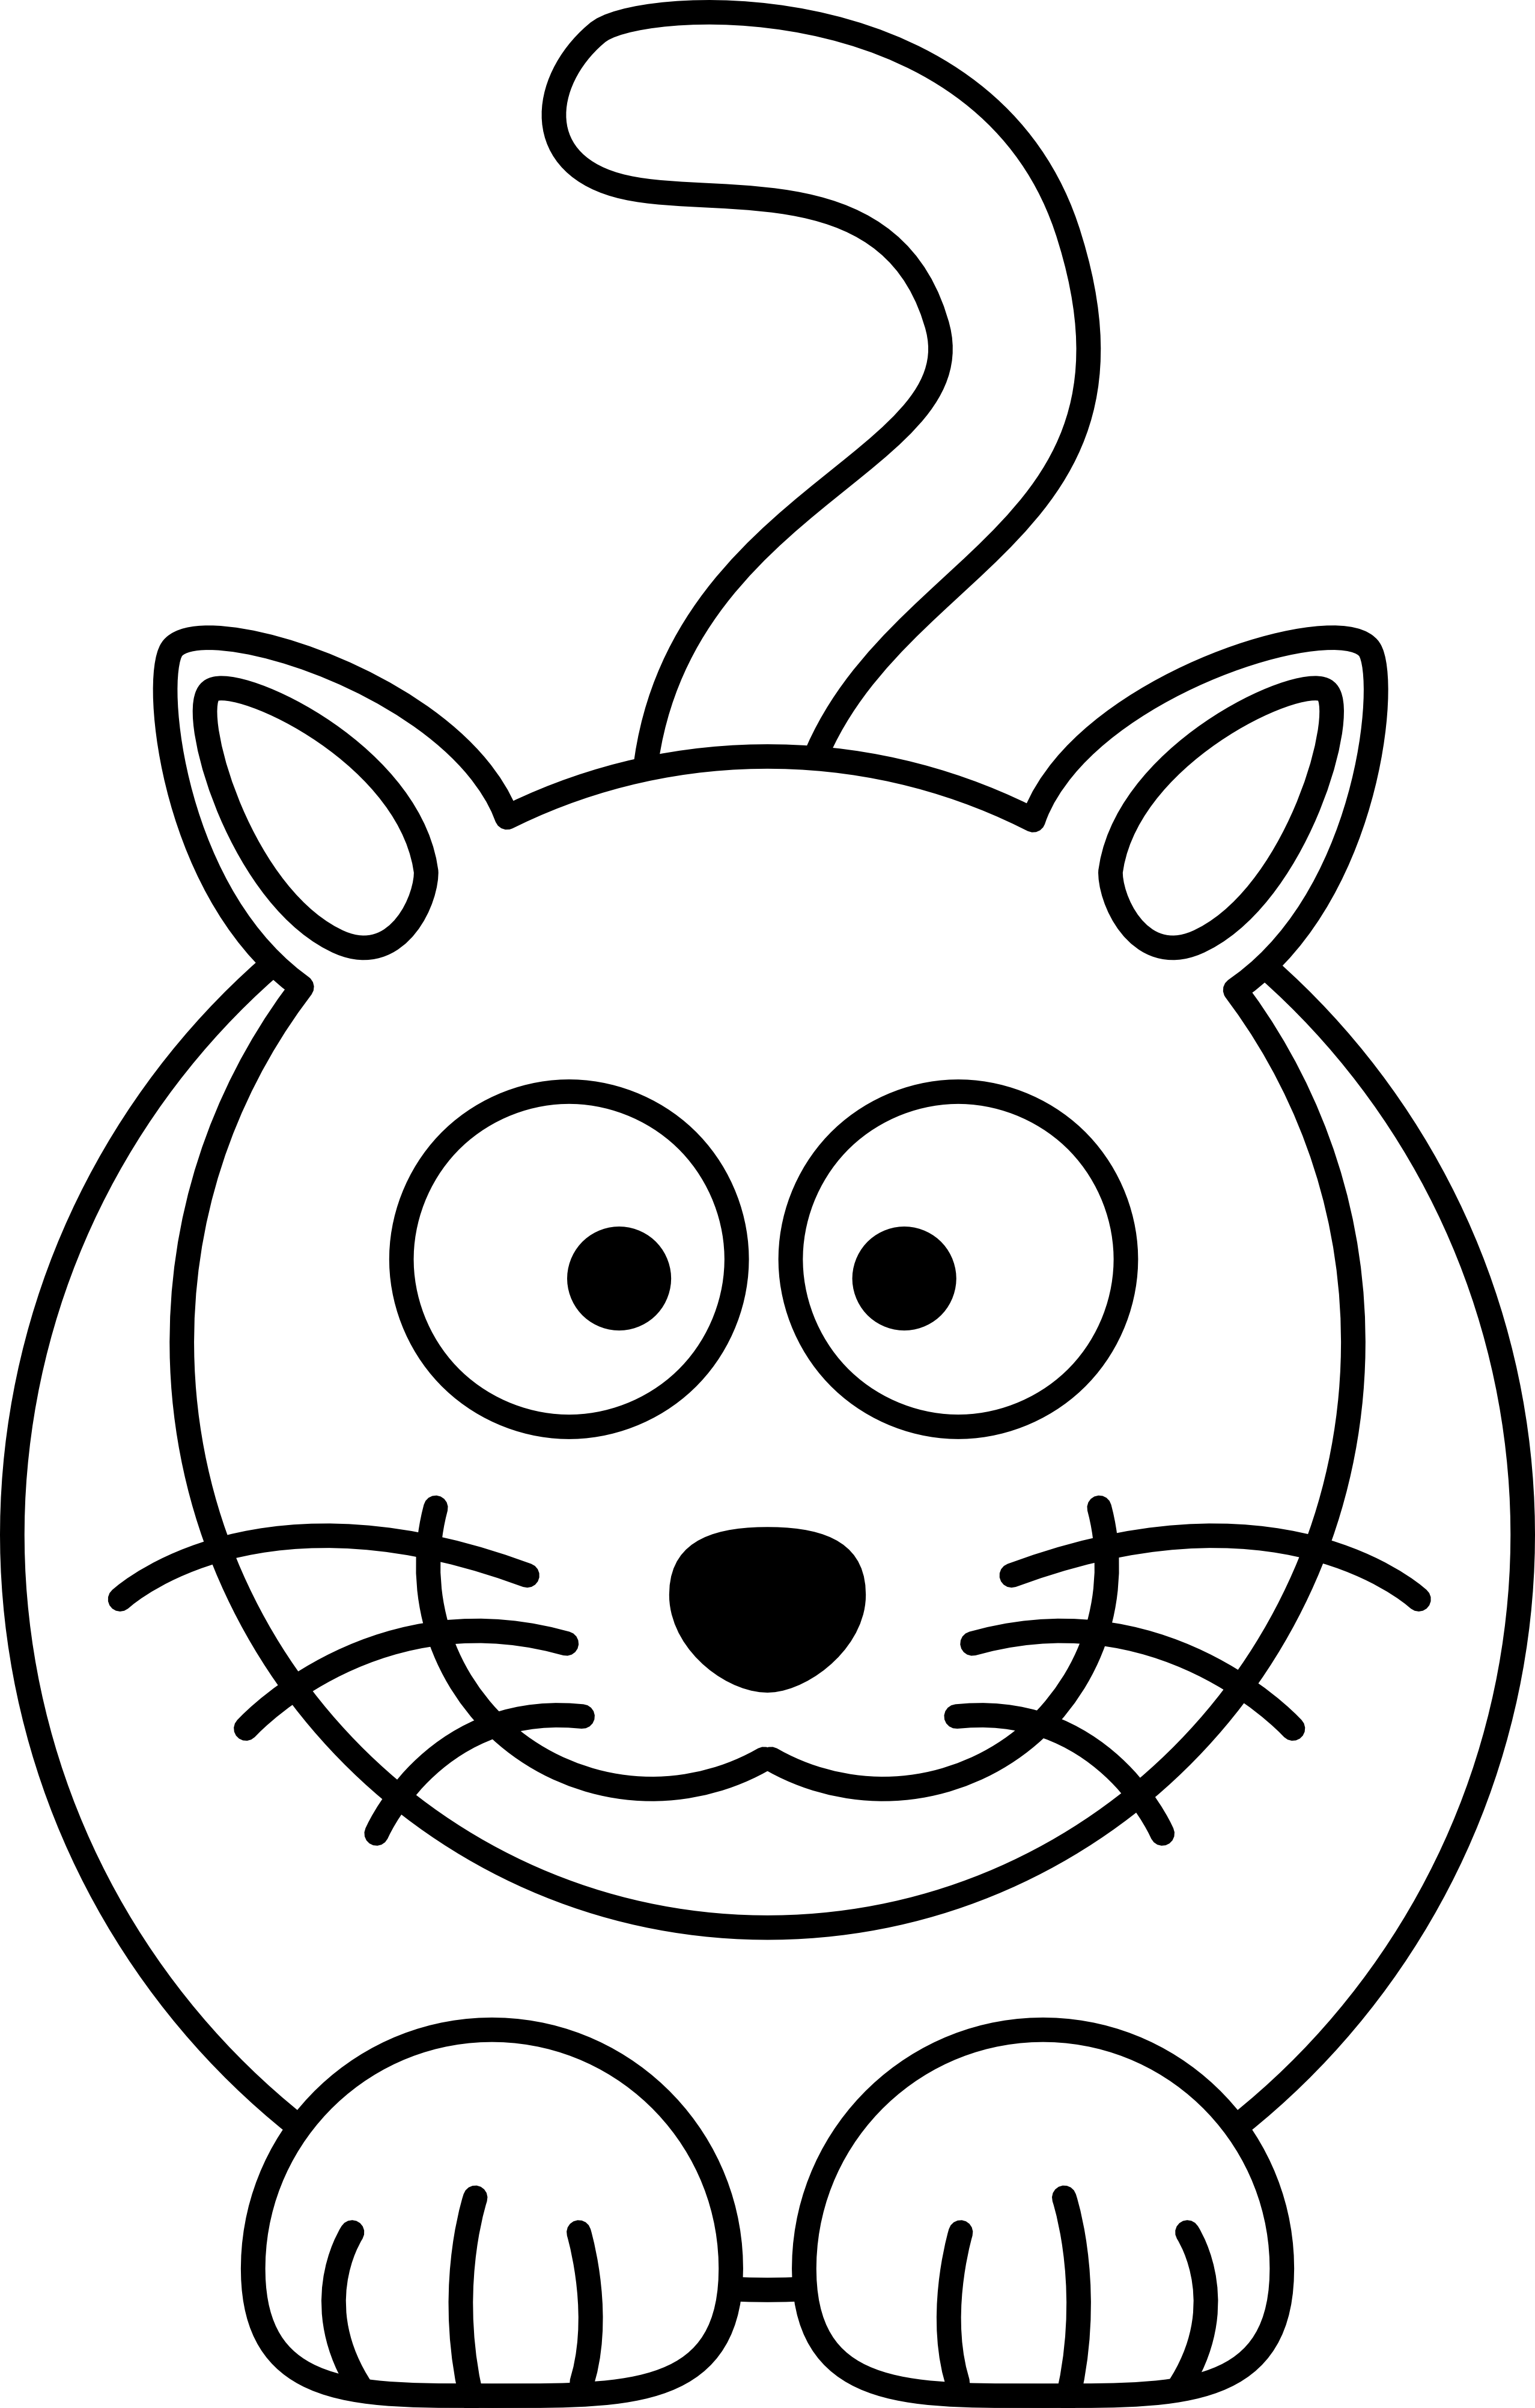 Hands clipart cat.  collection of easy